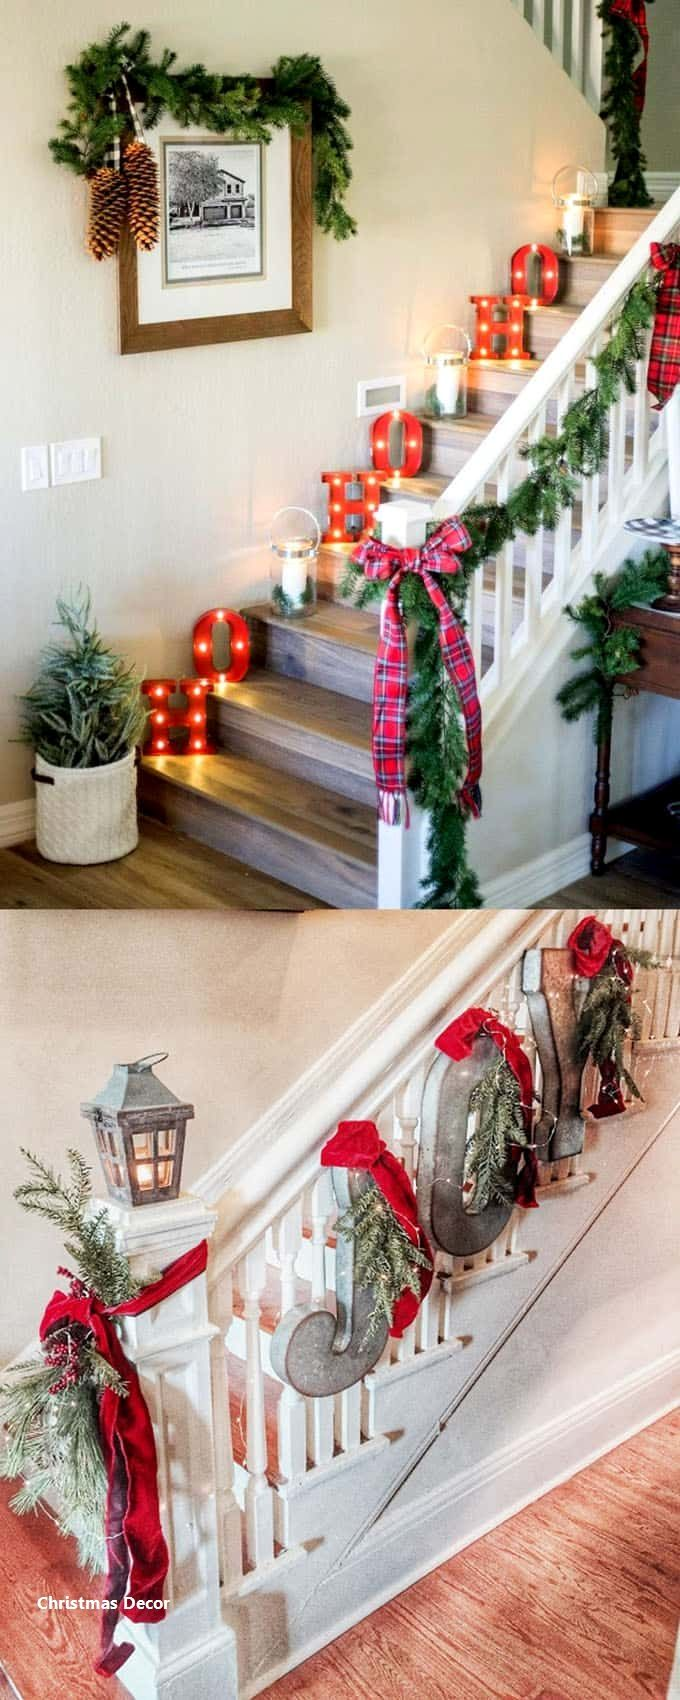 Simple Cute Winter And Christmas Decor For 2017 1 Diy Warm Accents Diy Christmas Decorations Easy Christmas Decorations Holiday Decor